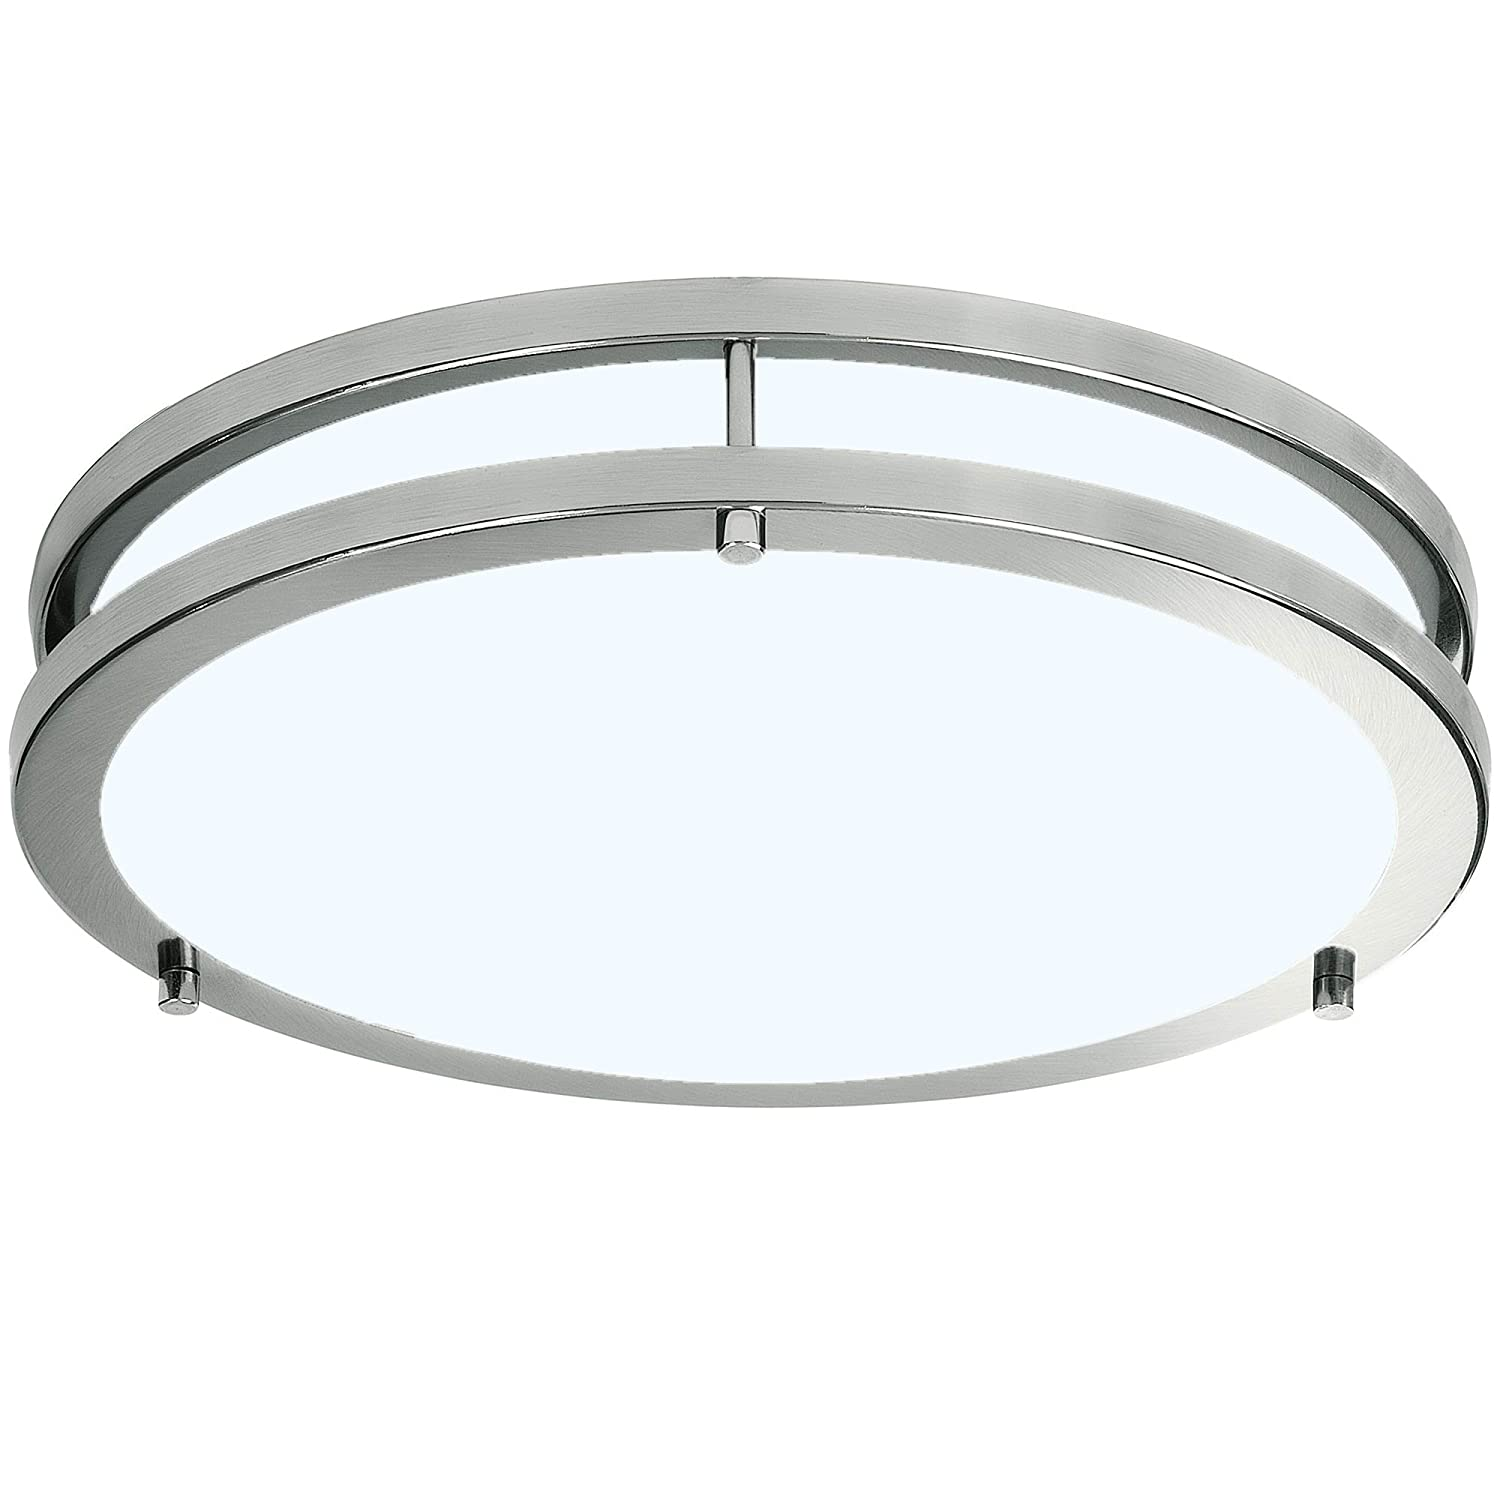 5000k Daylight 16  Round LB72133 LED Flush Mount Ceiling Lighting Oval, Antique Brushed Nickel, 32-Inch 4000K Cool White, 2800 Lumens, Energy Star